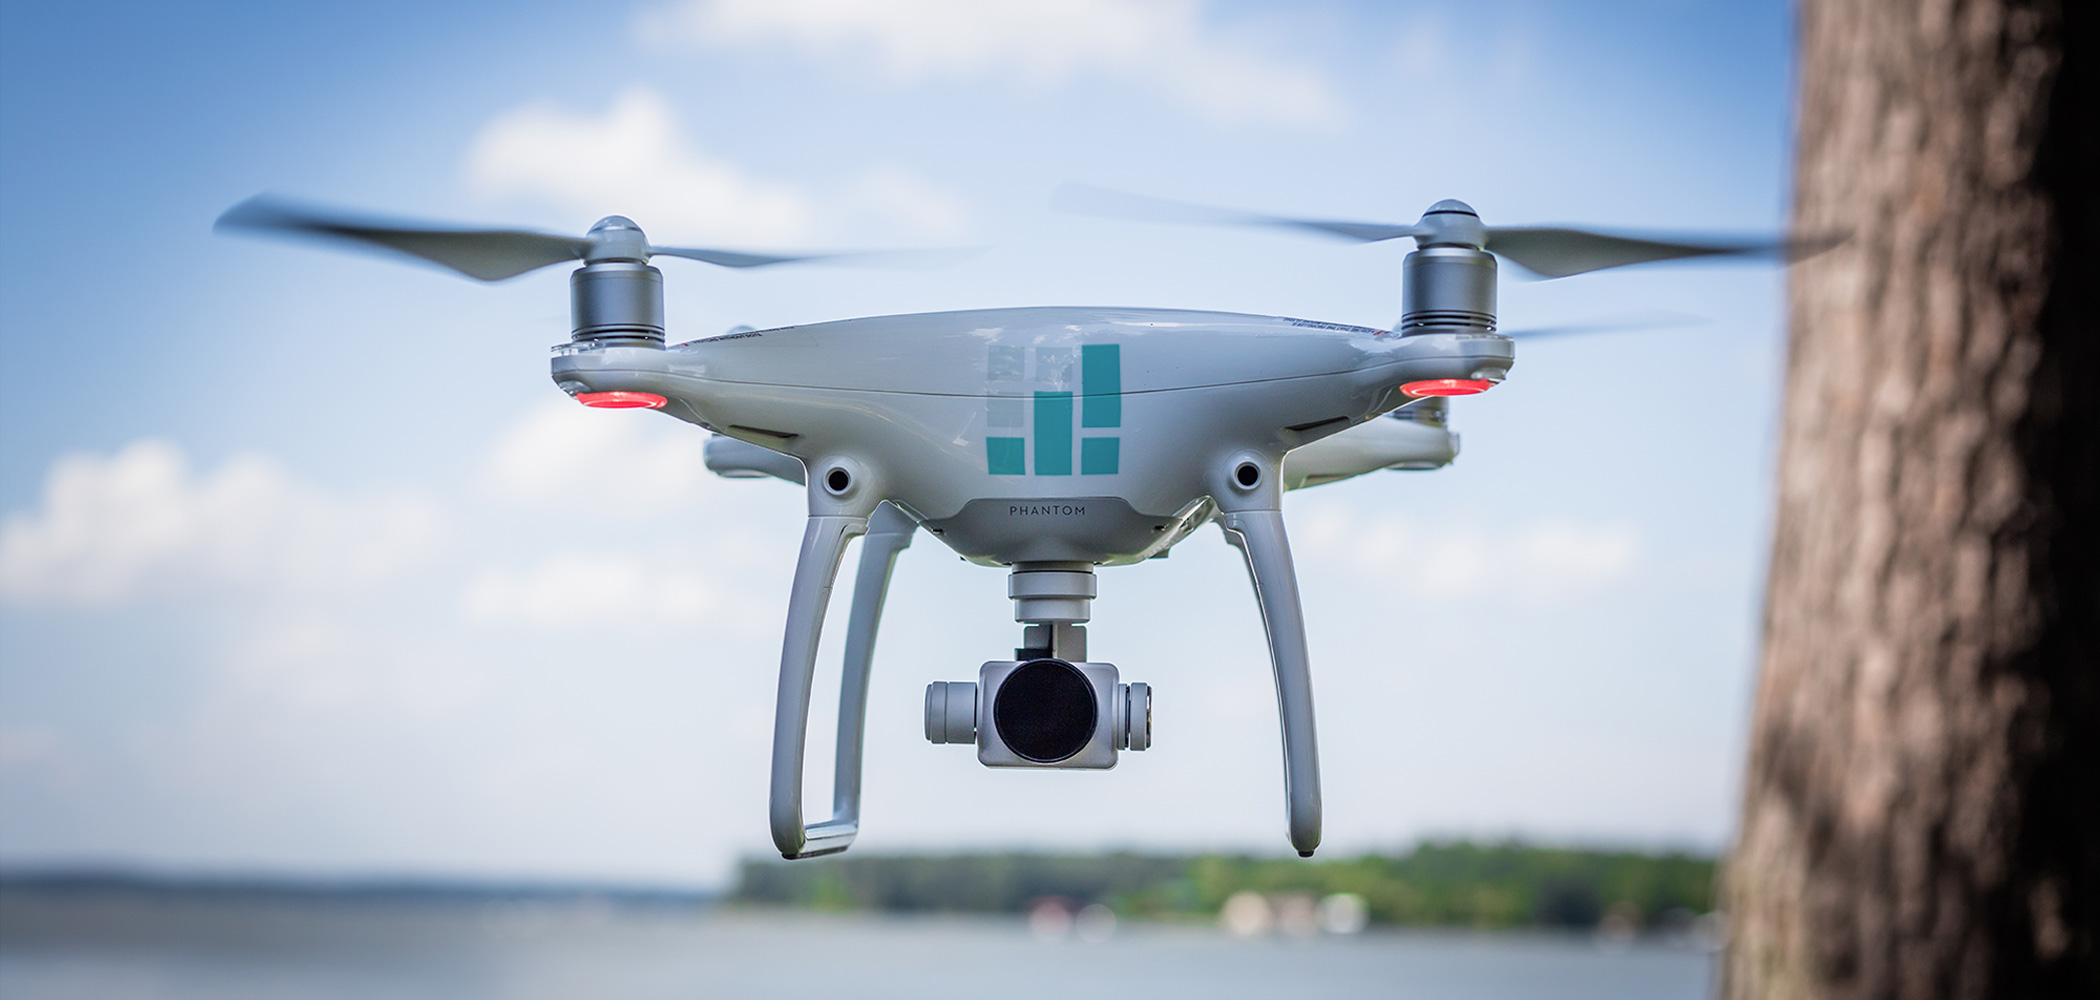 Now buzzing: Setmore Drone Reminders!